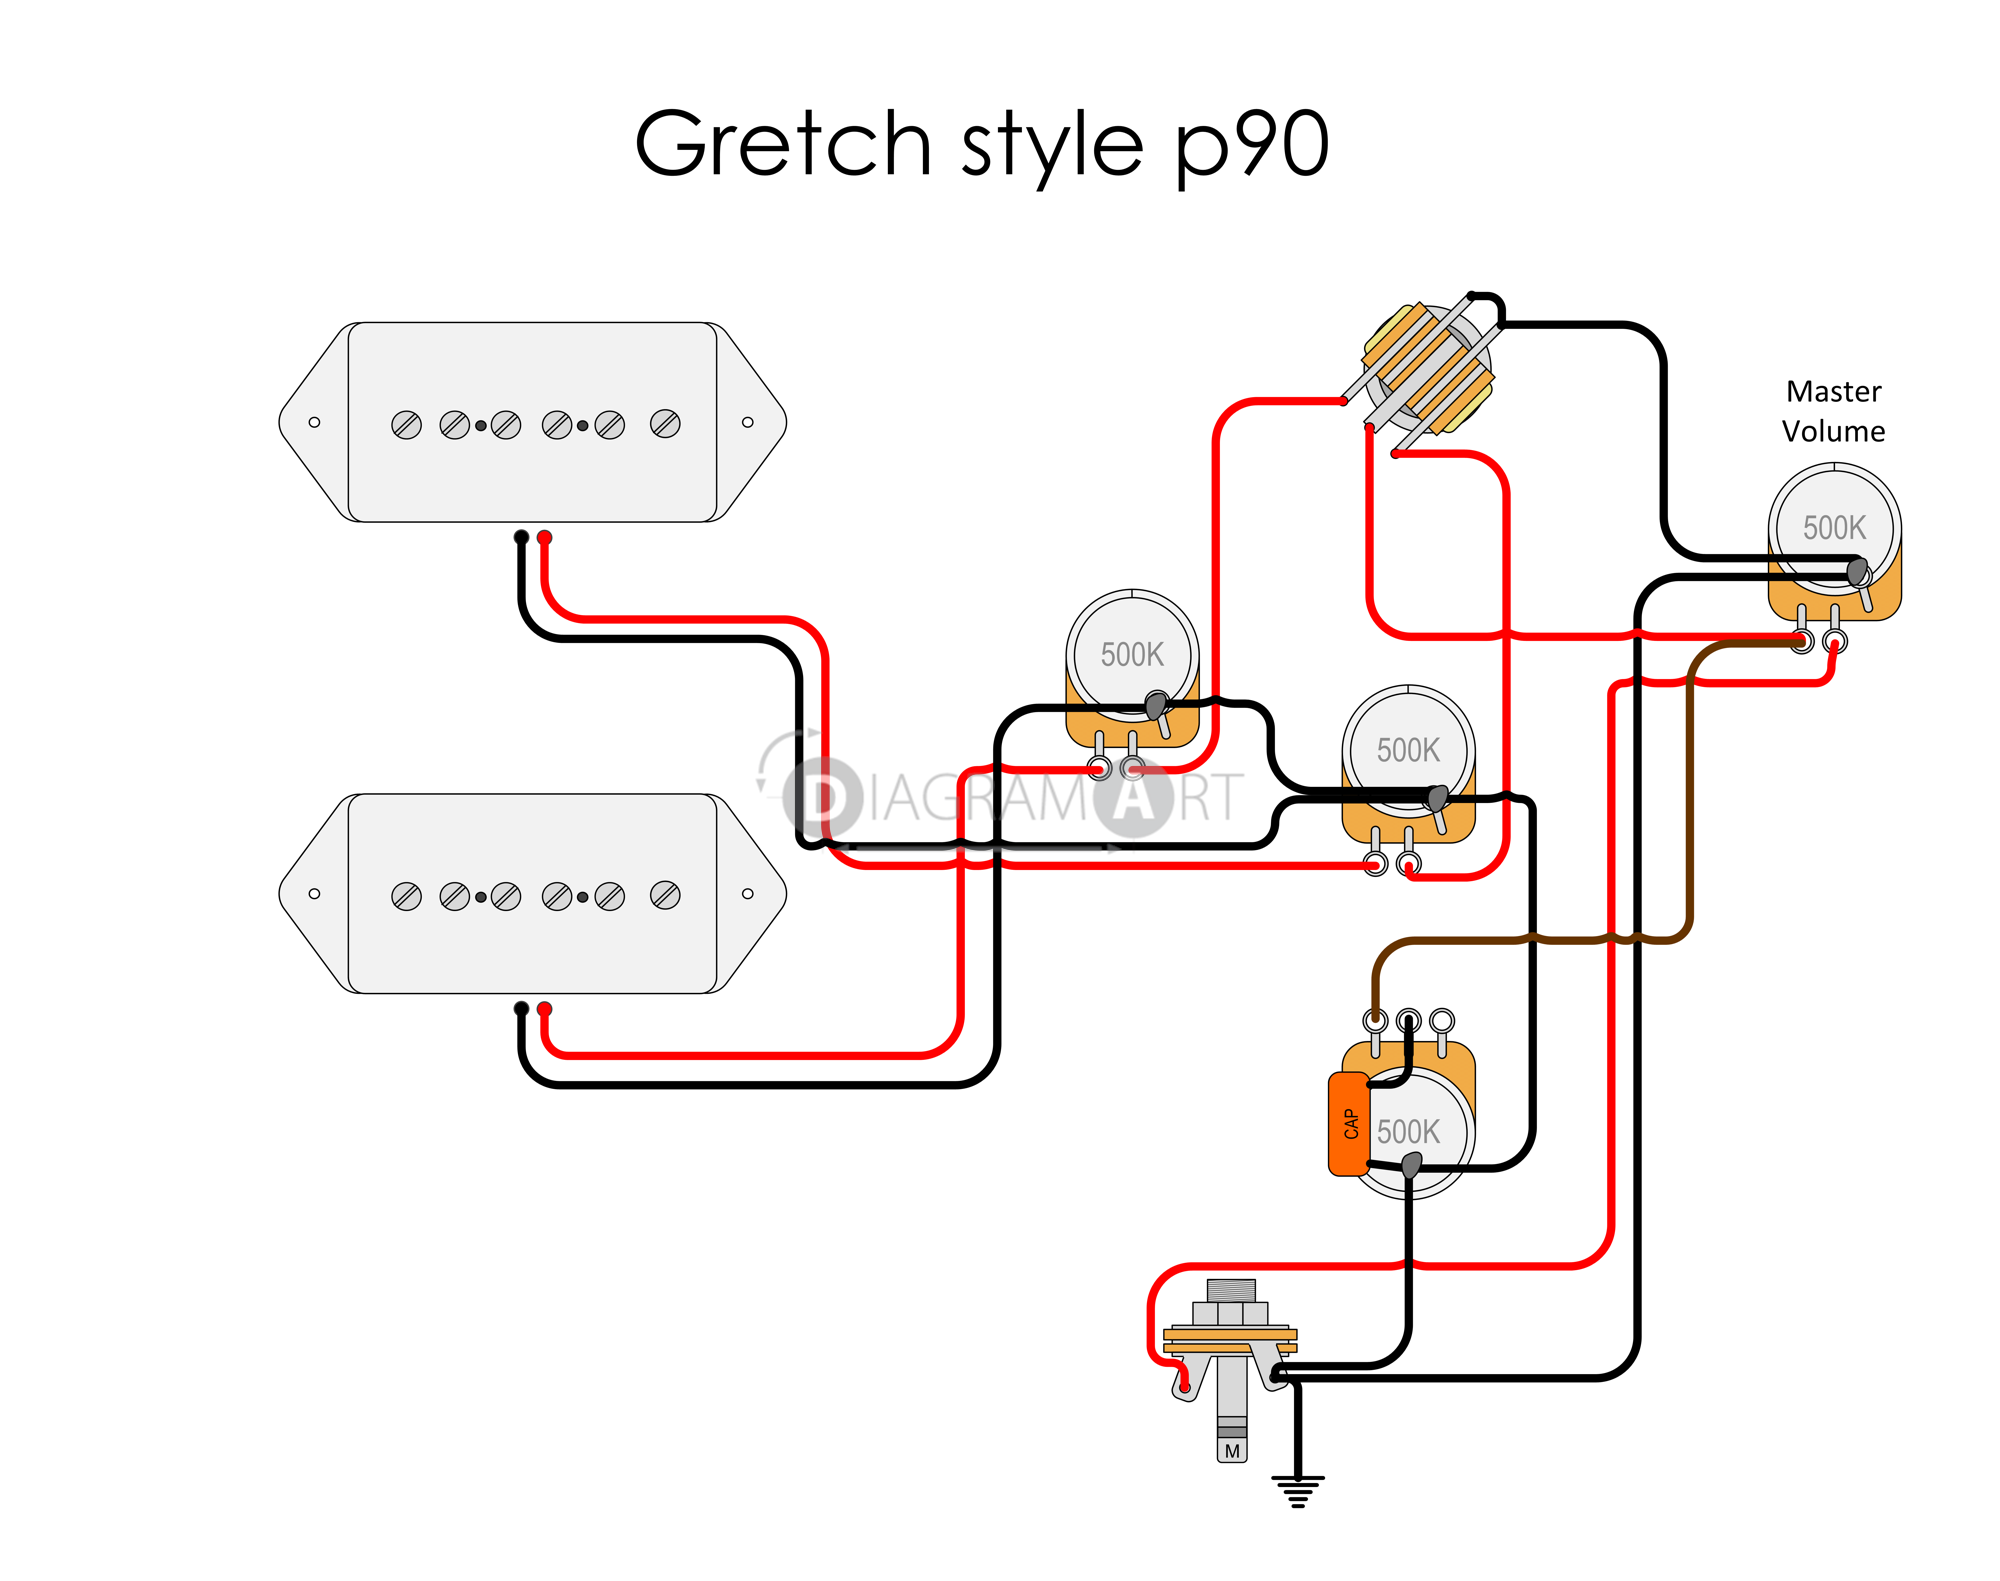 P90 Wiring Diagram 2 Free Picture Schematic Guitar Just Rh Lailamaed Co Uk Harness Single Pickup